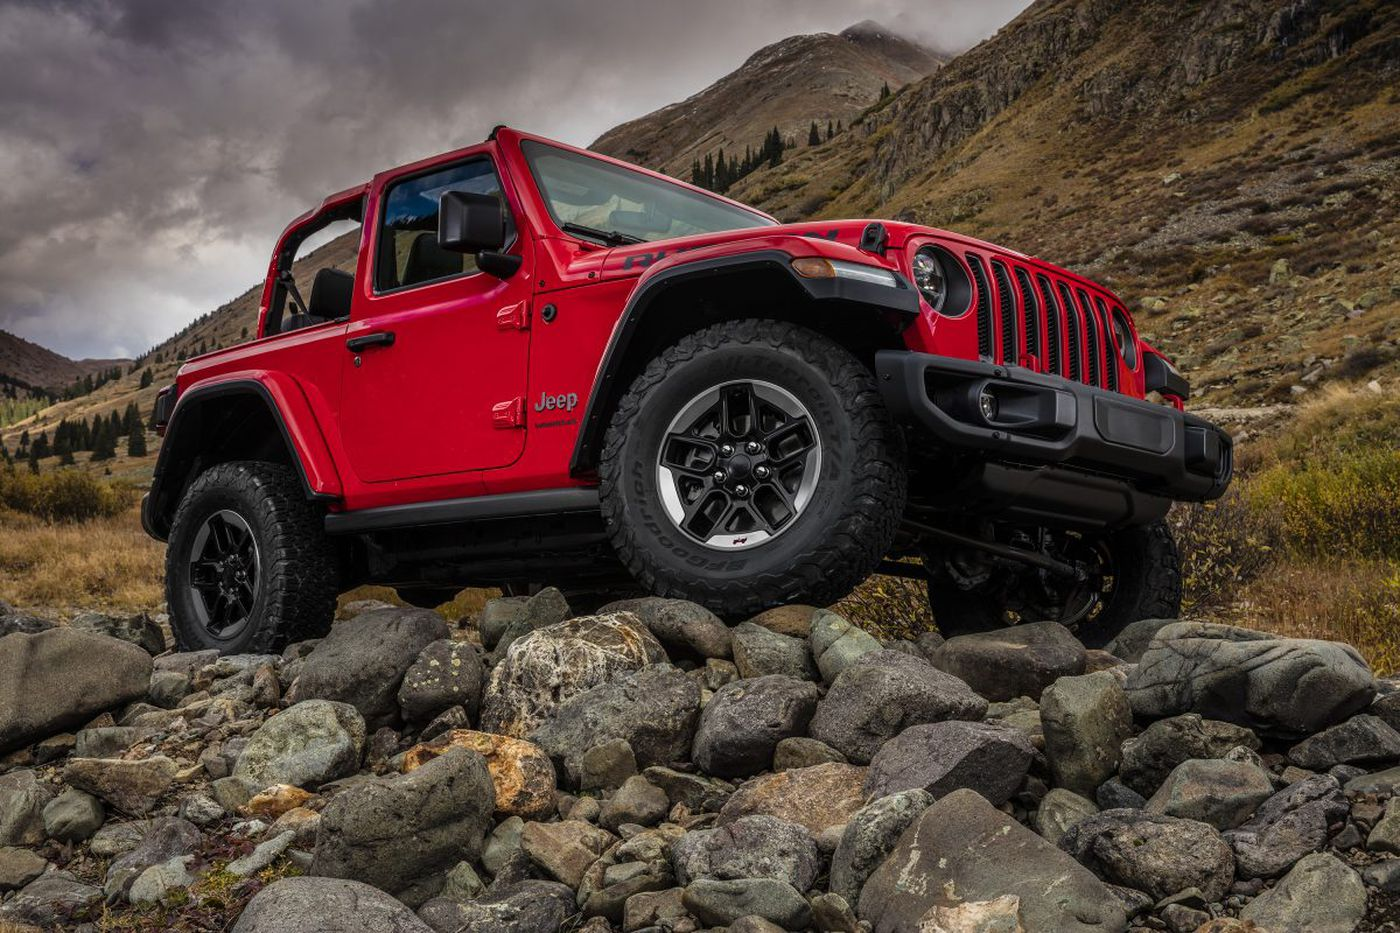 2018 Jeep Wrangler gets a refresh that remains true to its soul